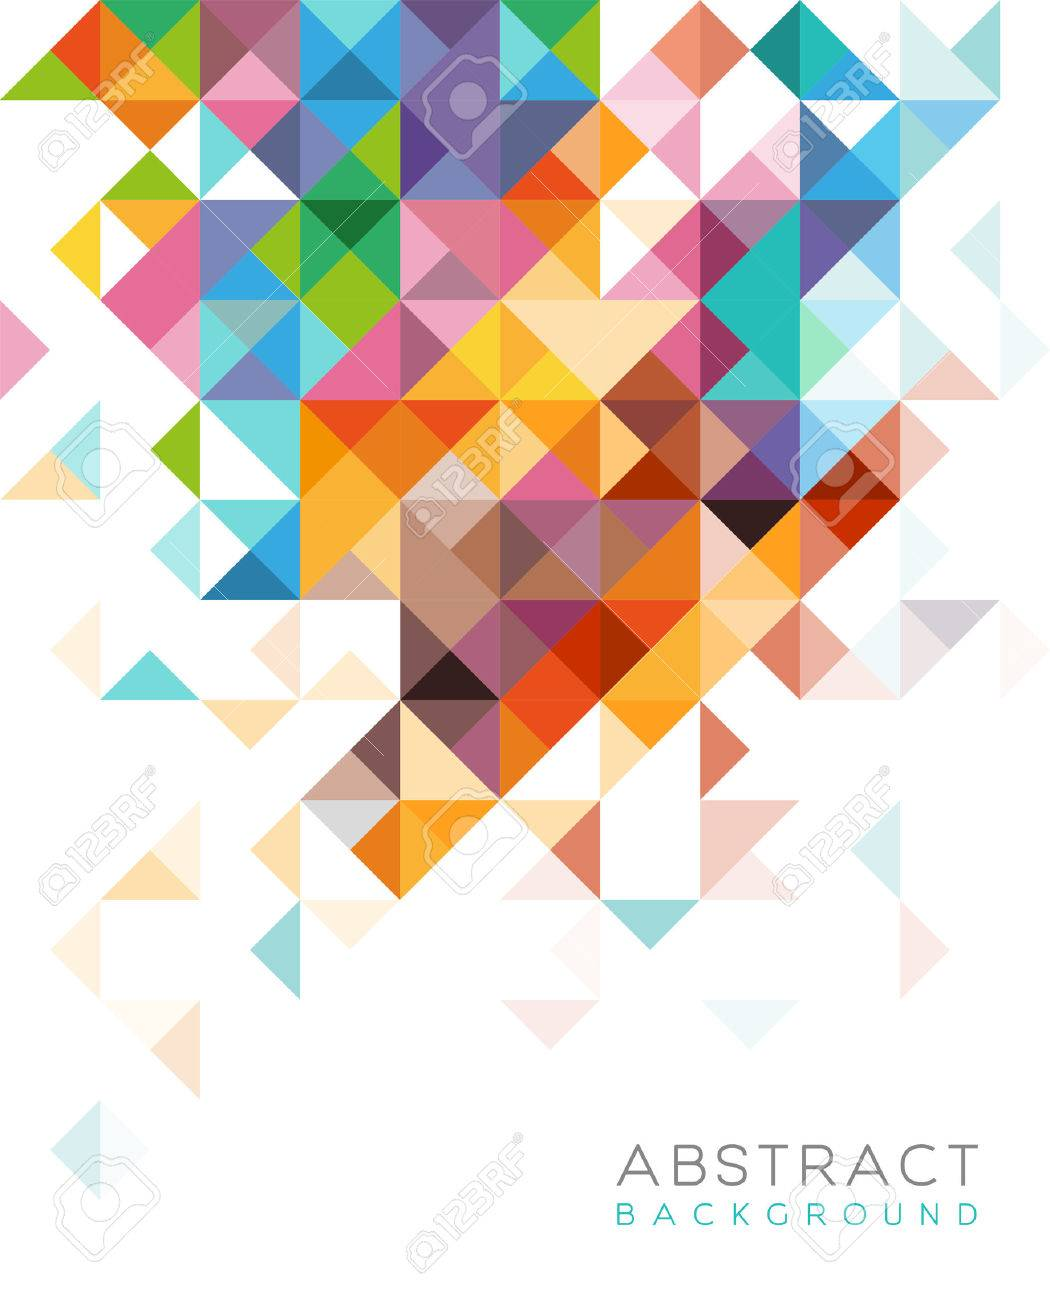 Abstract Design For Web Or Print Royalty Free Cliparts, Vectors, And ...